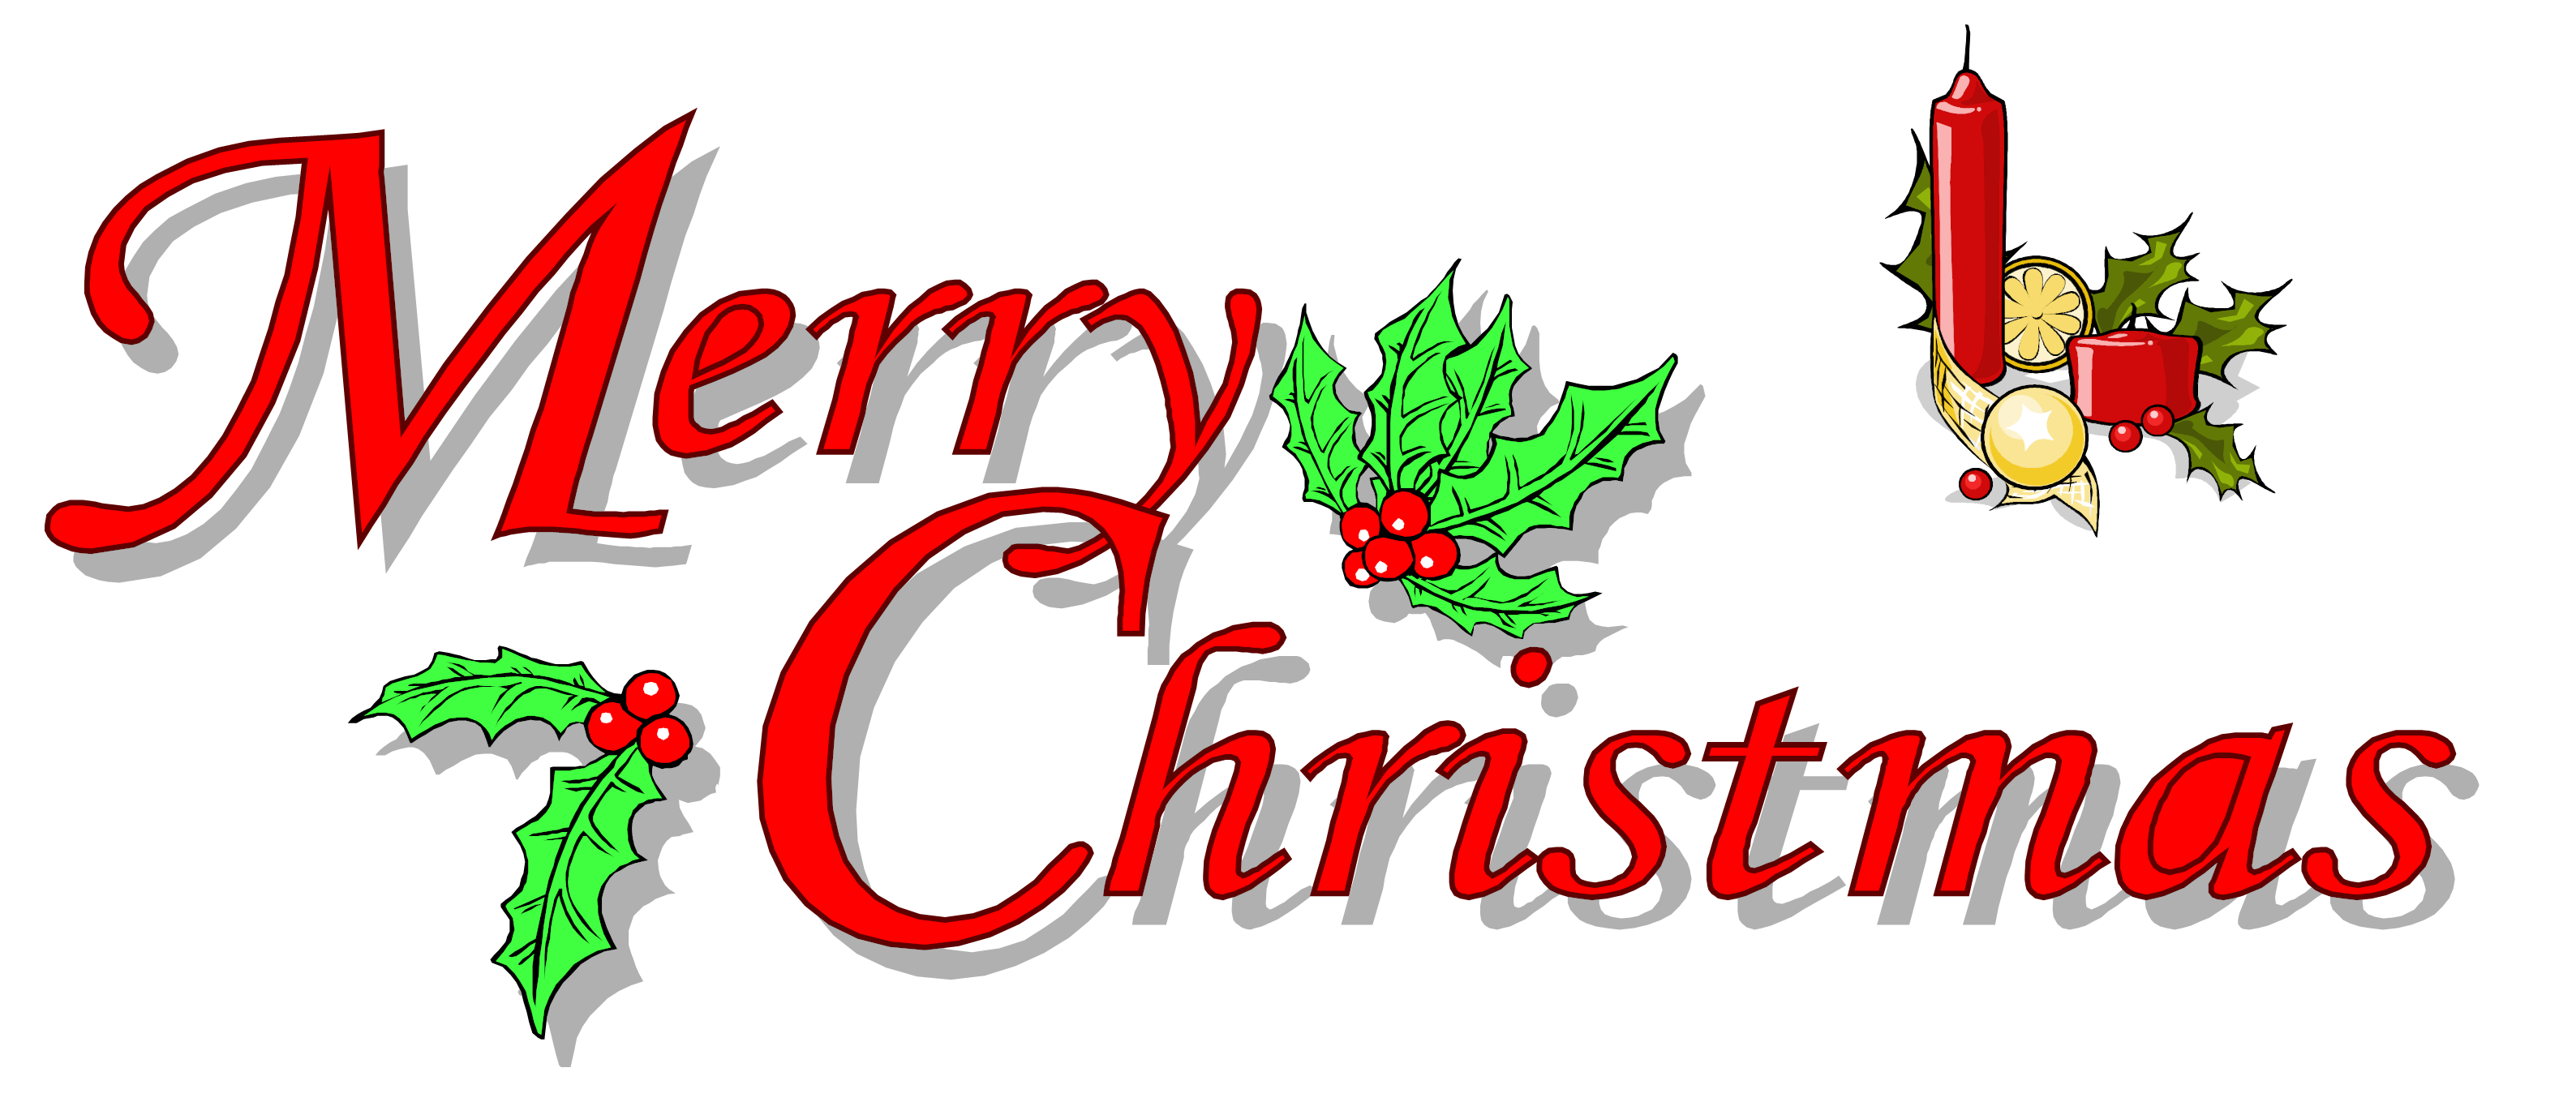 Download Merry Christmas Text Picture HQ PNG Image | FreePNGImg